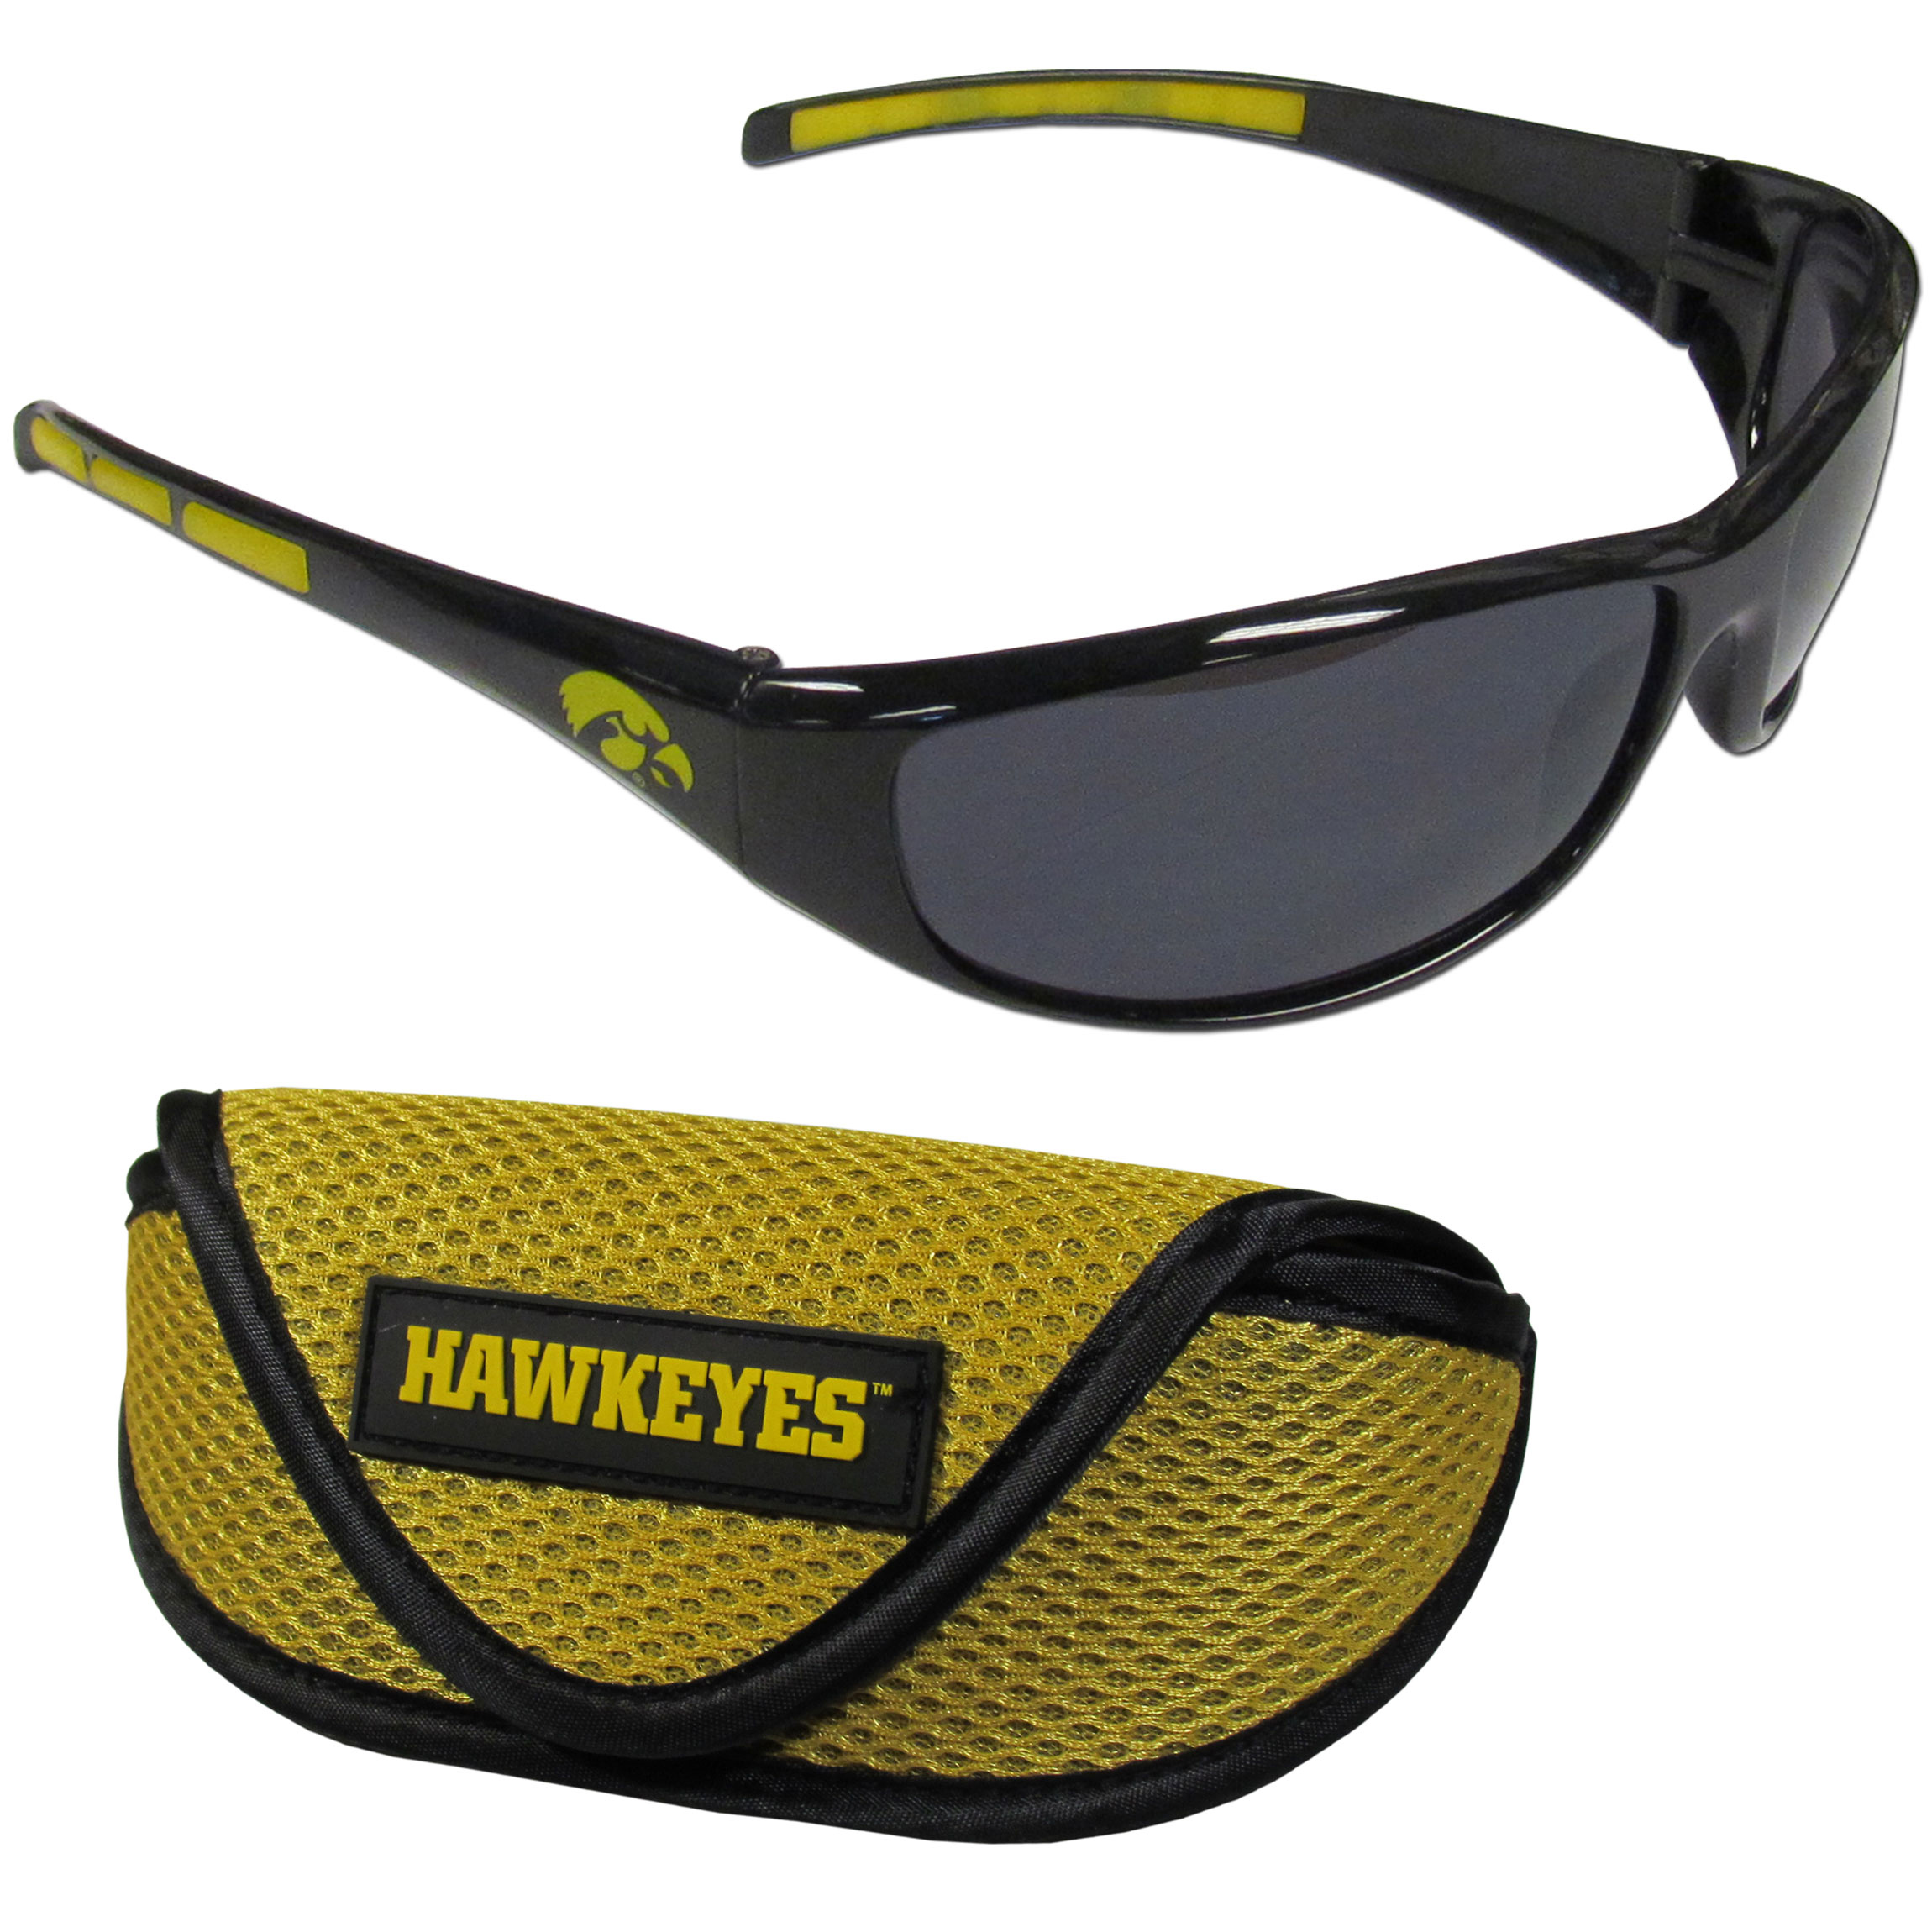 Iowa Hawkeyes Wrap Sunglass and Case Set - This great set includes a high quality pair of Iowa Hawkeyes wrap sunglasses and soft sport carrying case.